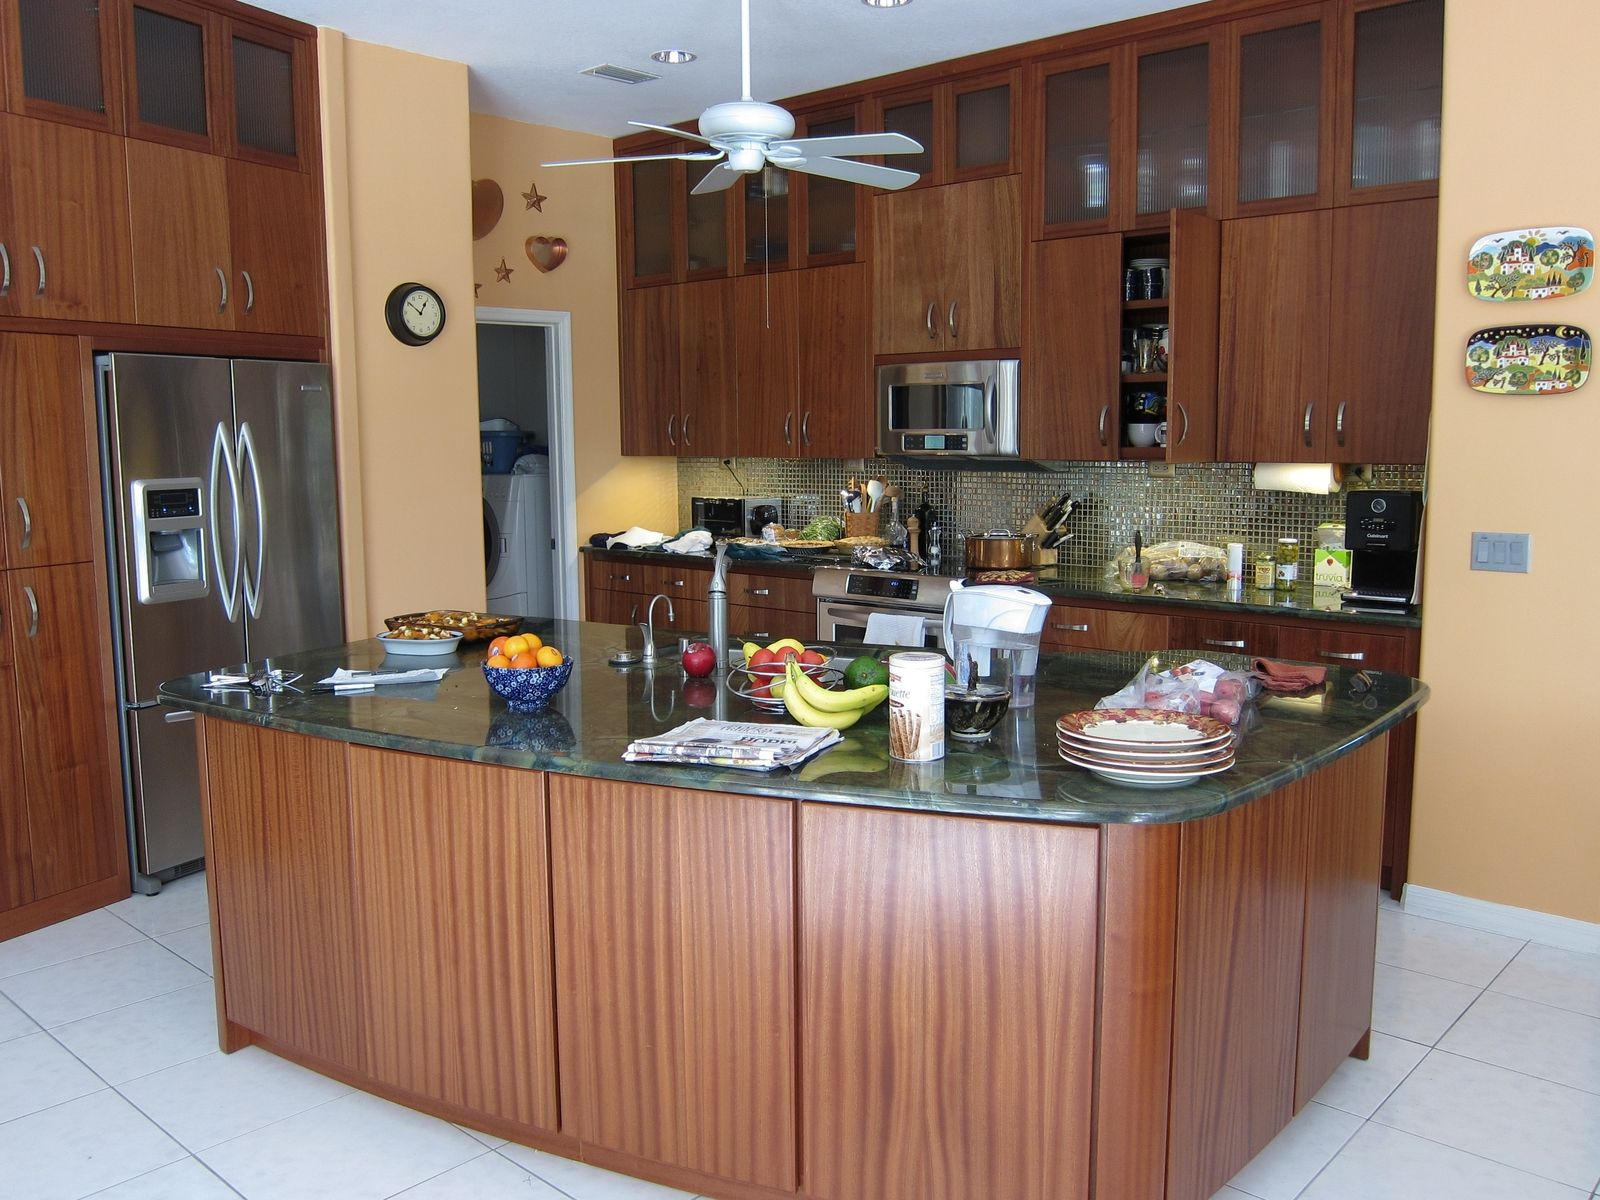 Best Kitchen Gallery: Sapele Wood Kitchen Cabi S Redglobalmx Org of Sapele Flat Panel Kitchen Cabinets on cal-ite.com